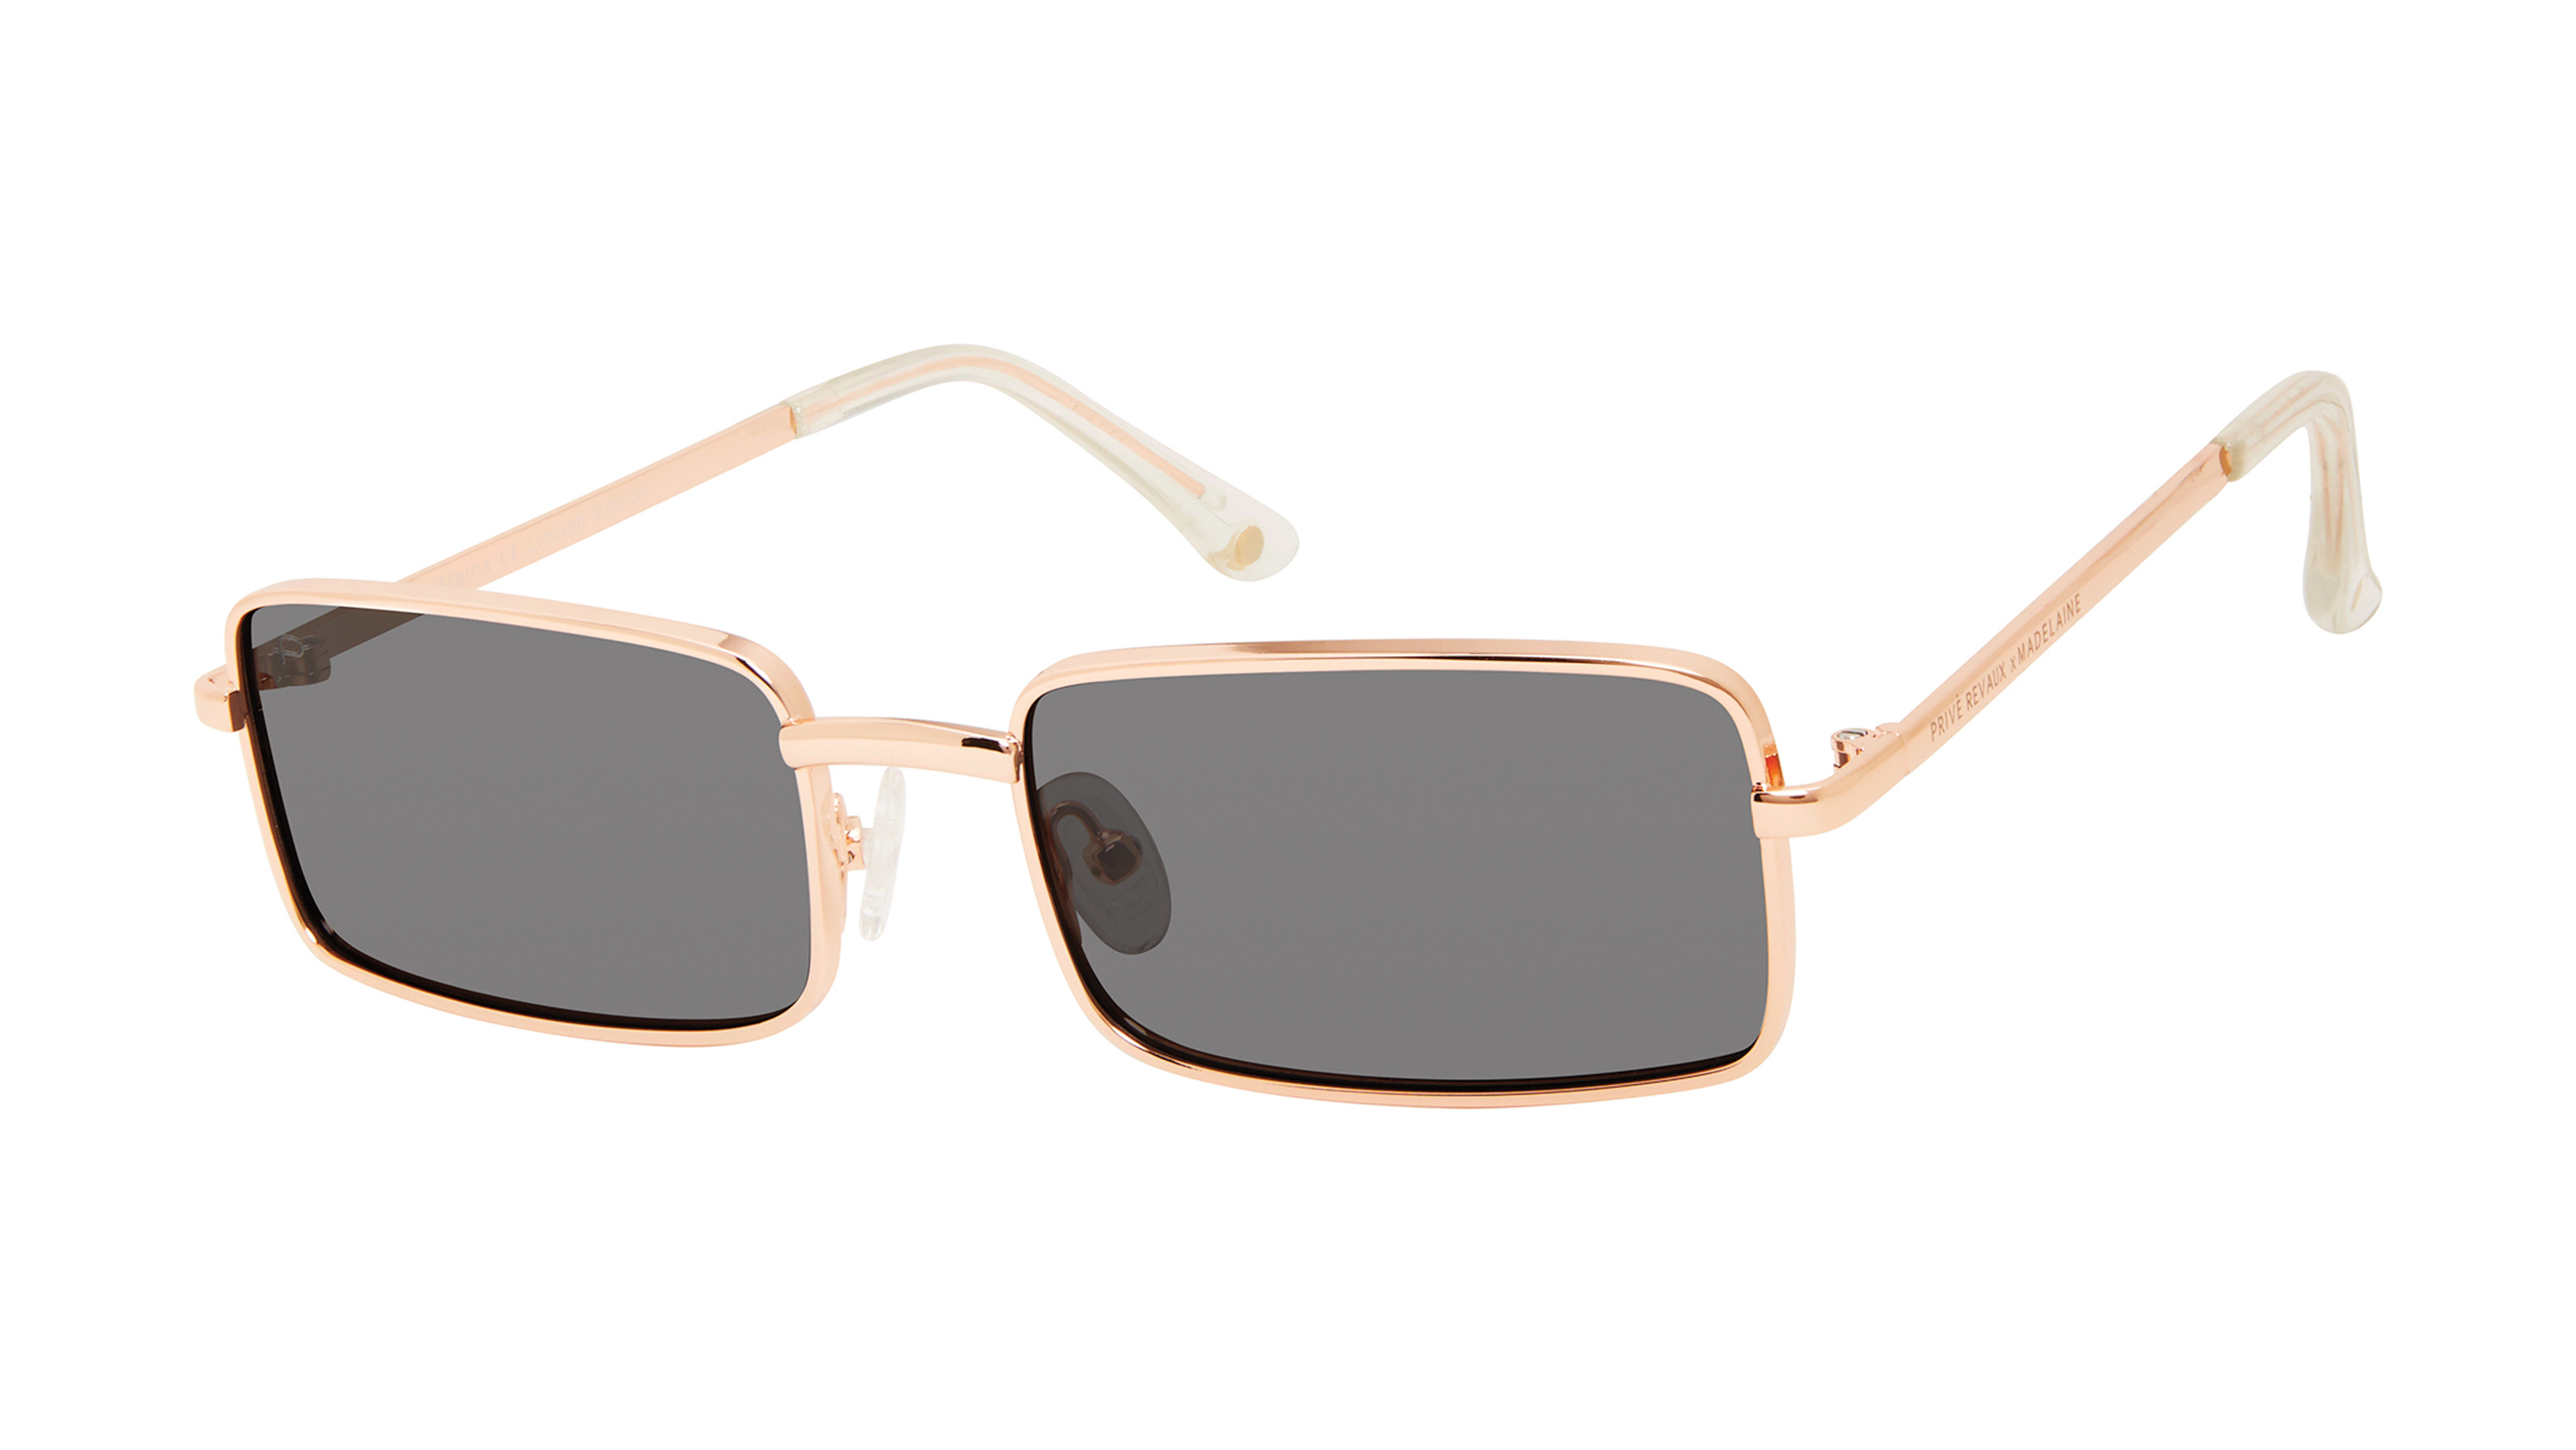 818893024016-angle-prive-revaux-sonnenbrille-prive-revaux-the-matrix-rose-gold